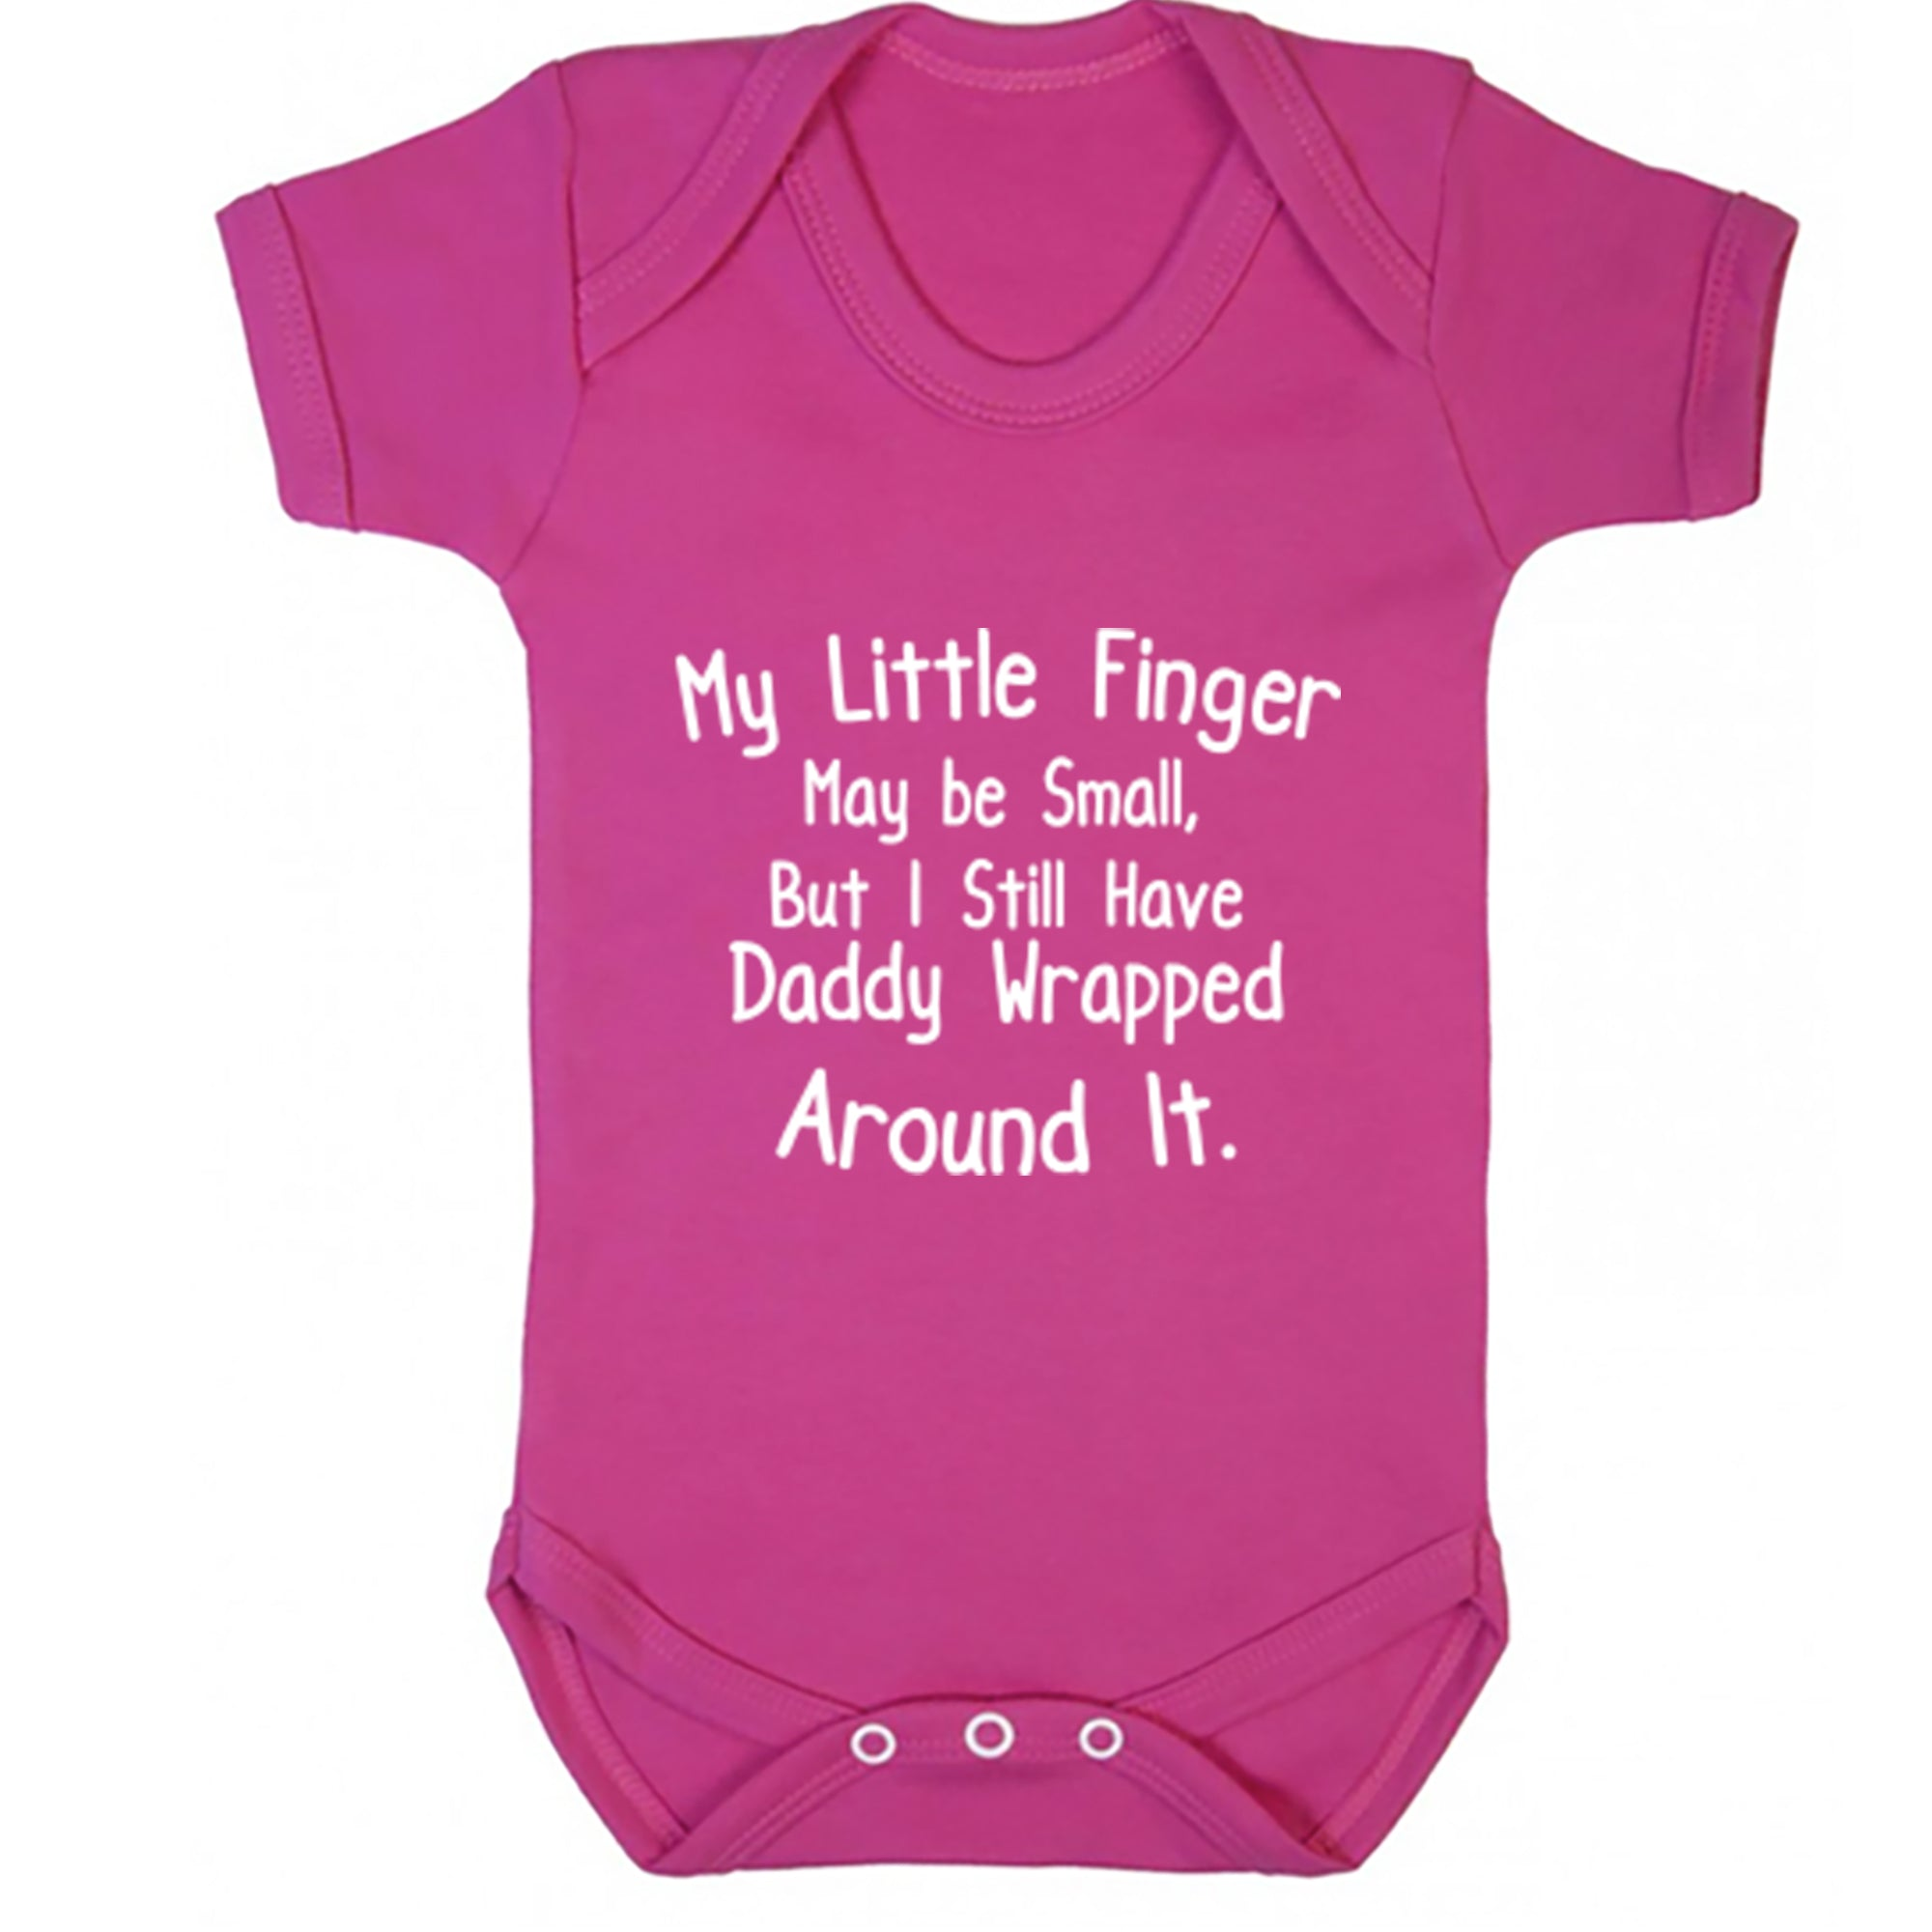 My Little Finger Maybe Small, But I Still Have Daddy Wrapped Around It Baby Vest S0725